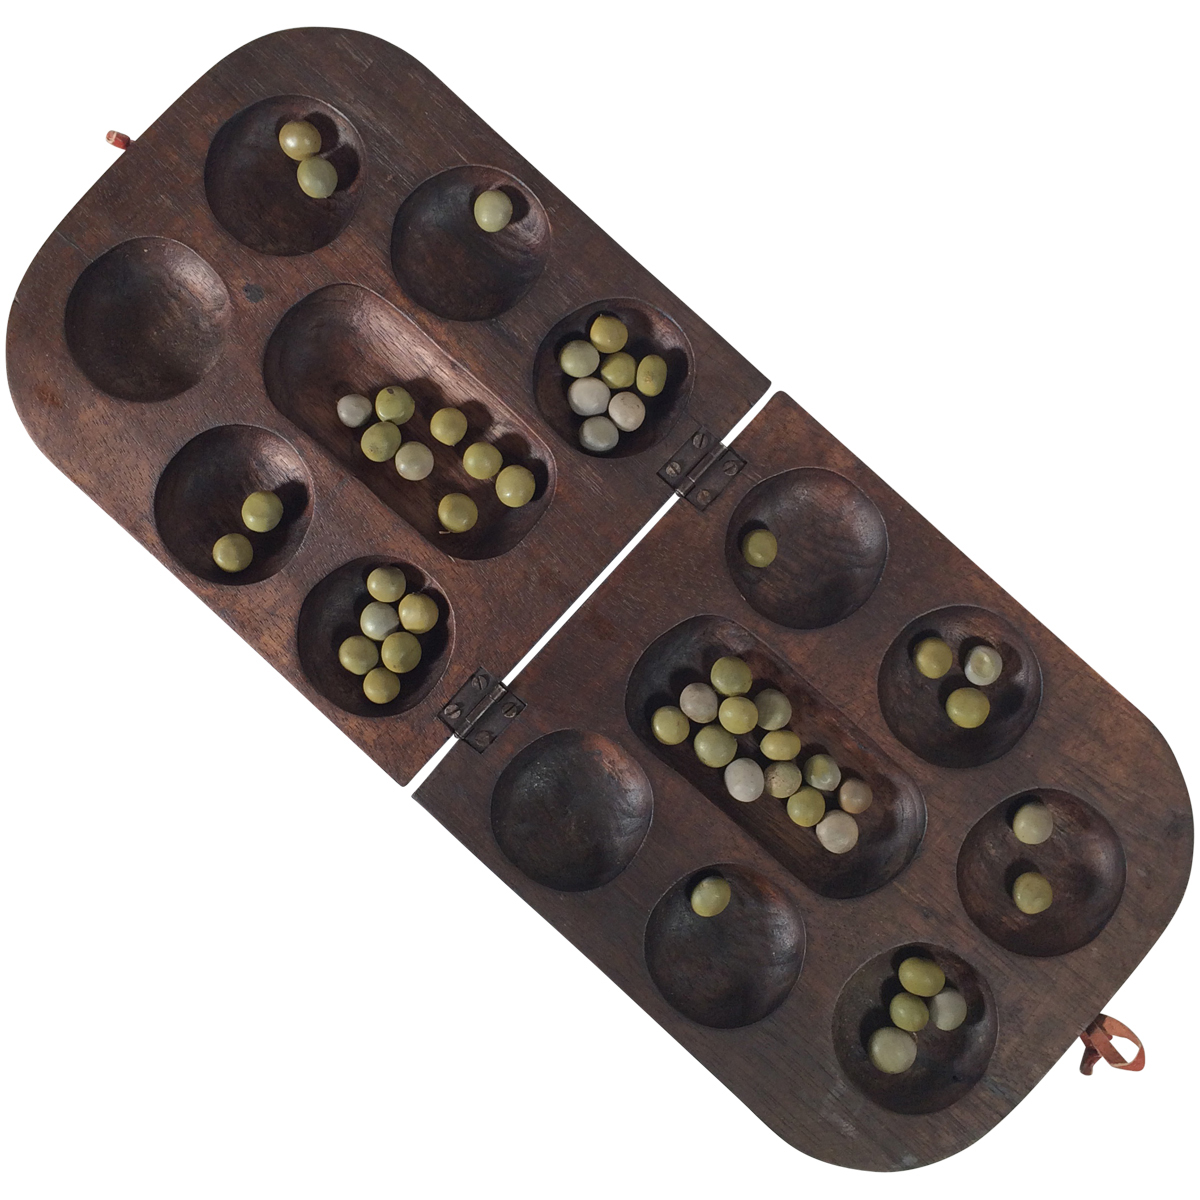 Circular Mancala Board Game with Mask Carvings